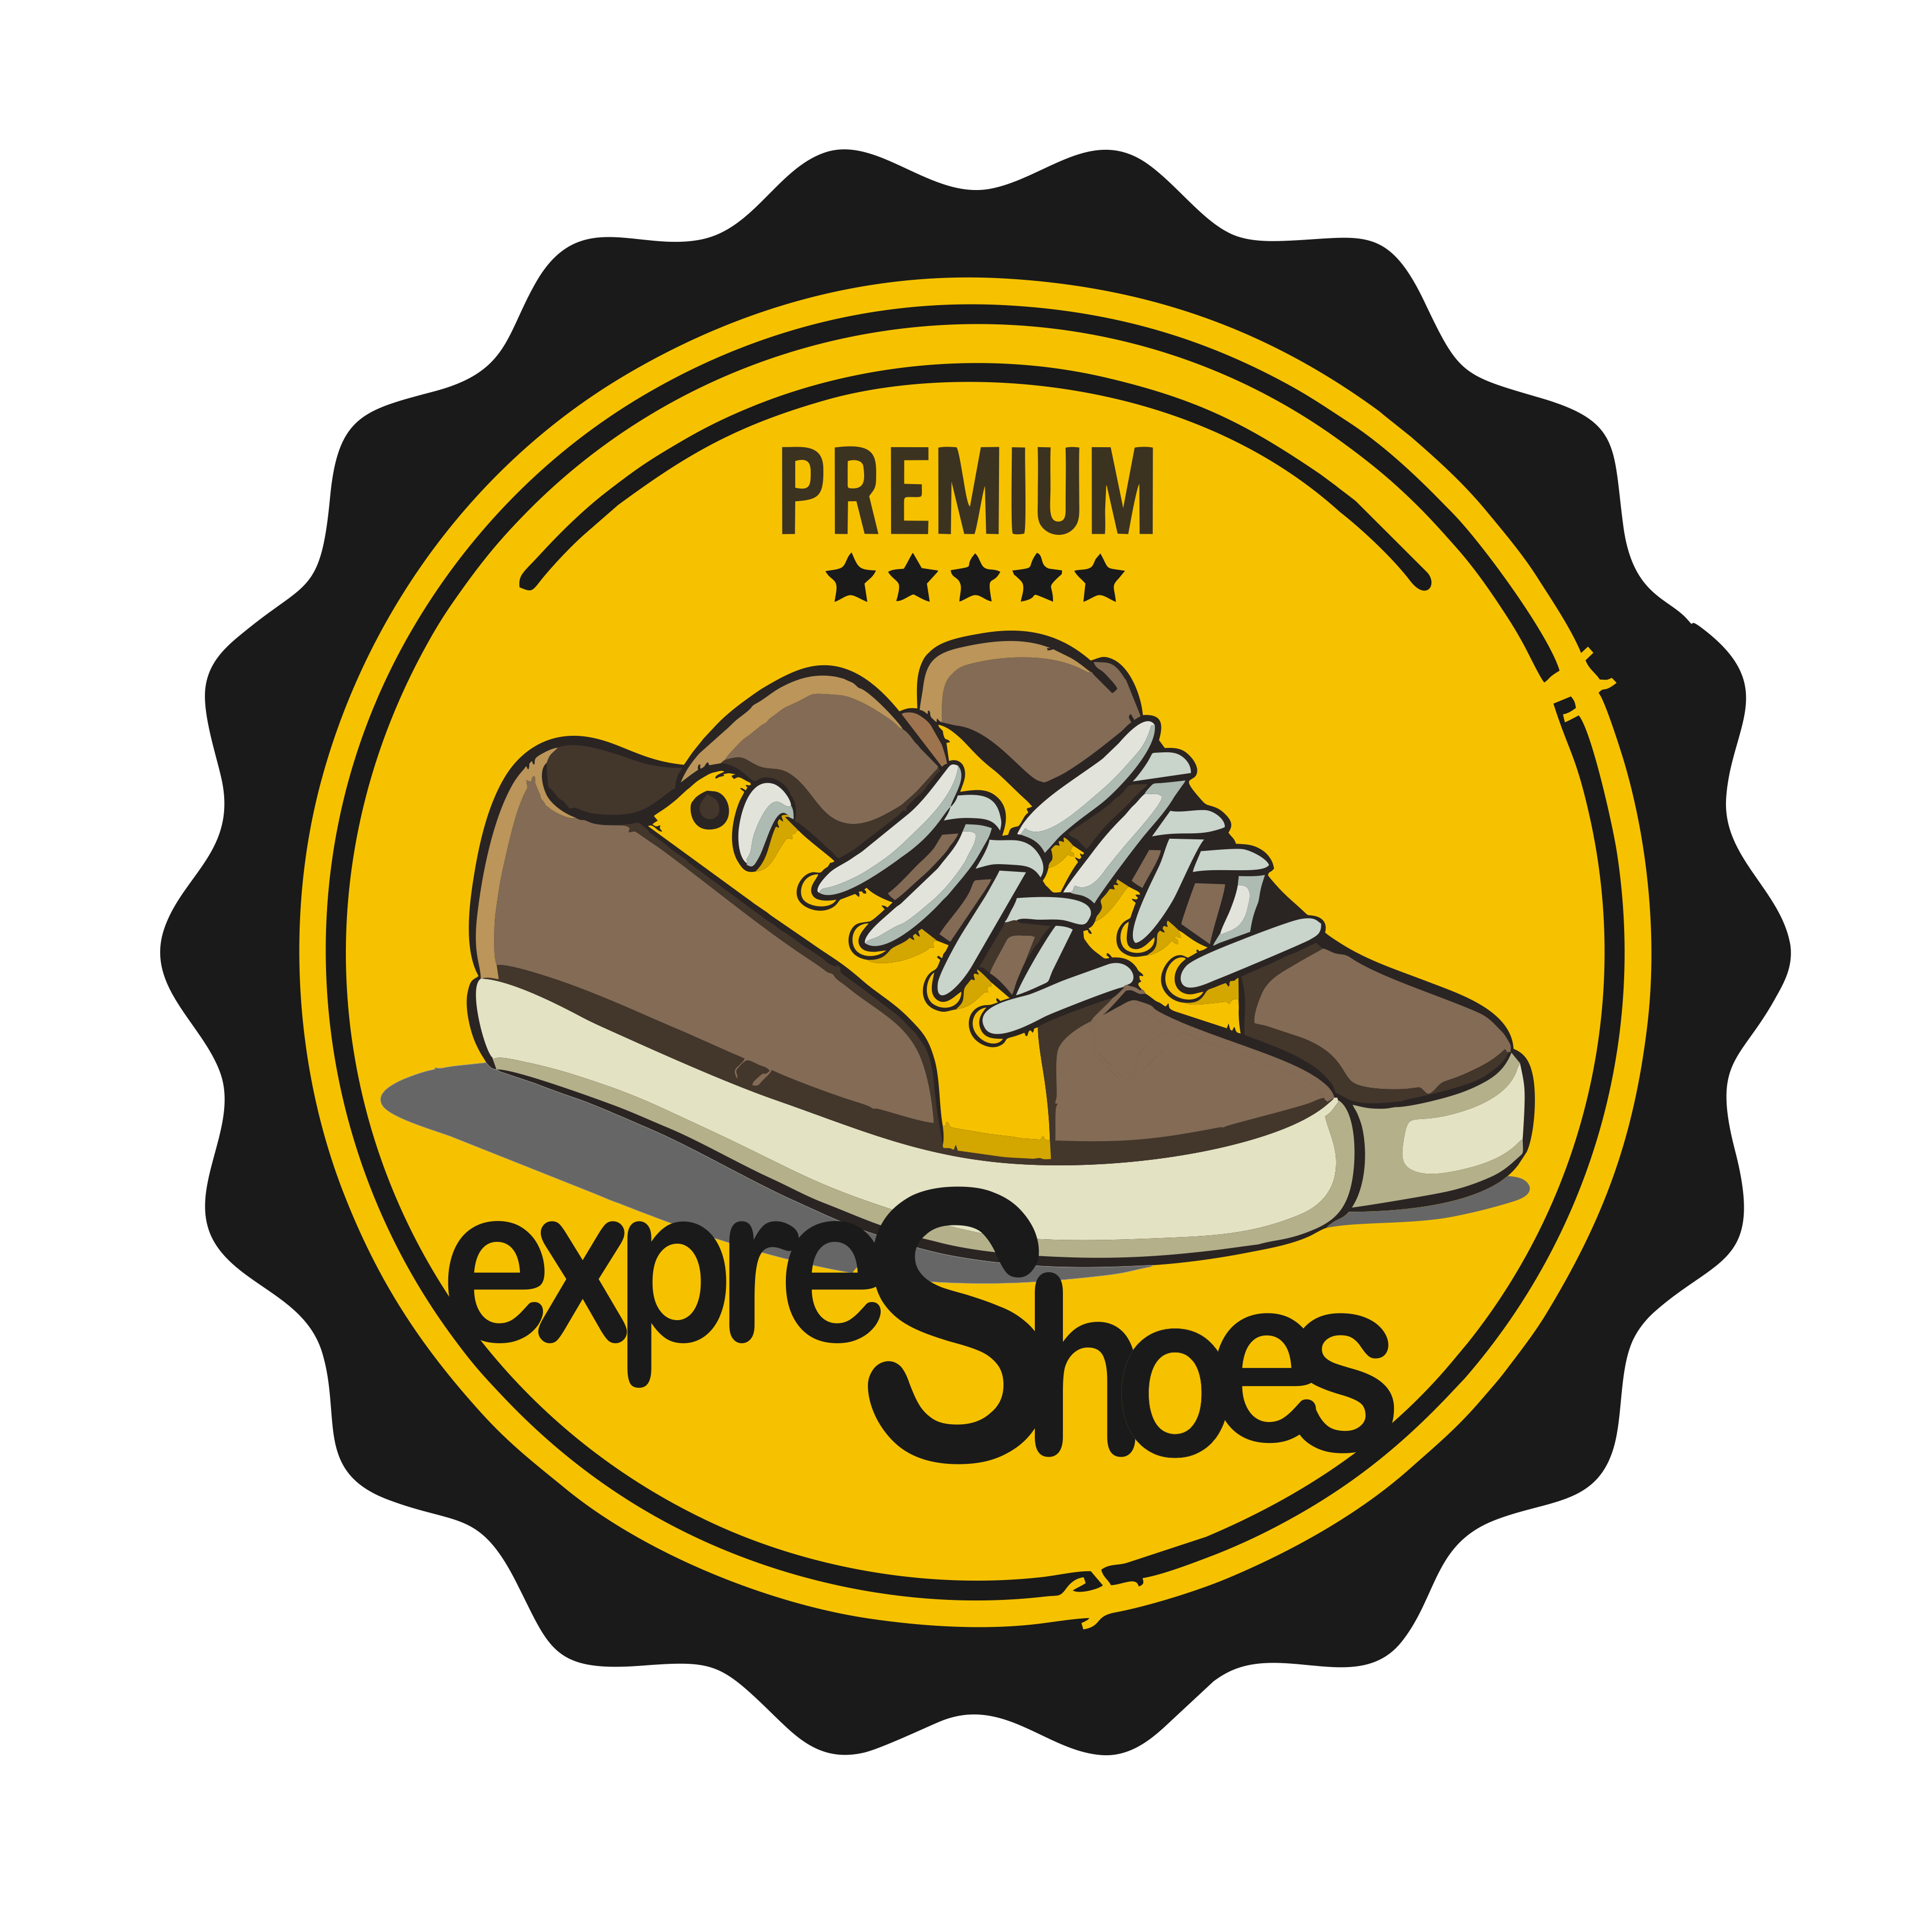 Expresshoes